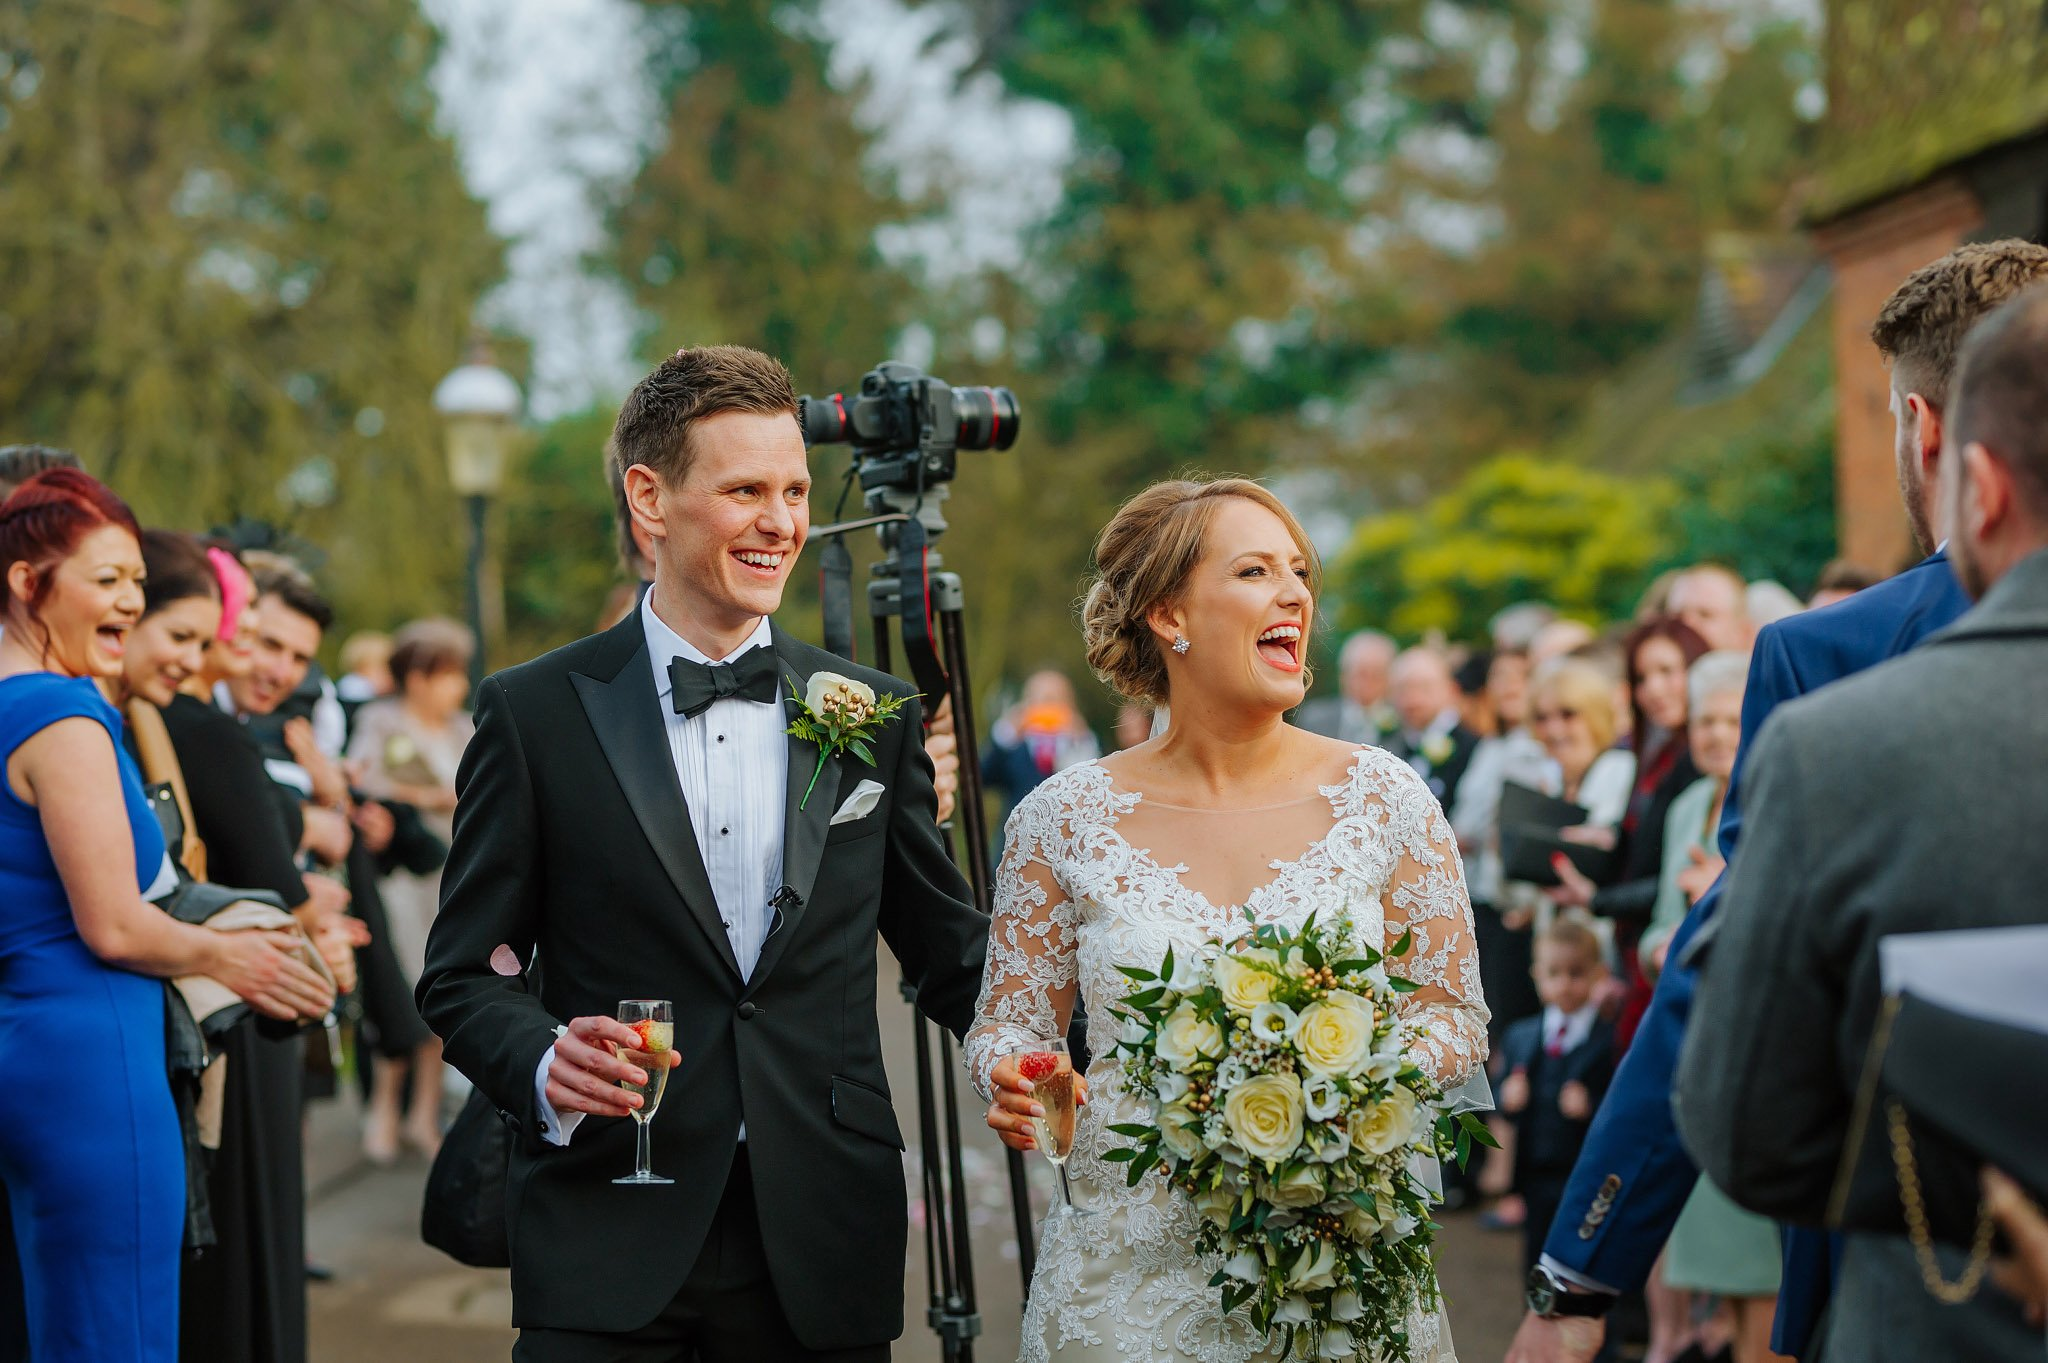 coombe abbey wedding coventry 48 - Coombe Abbey wedding in Coventry, Warwickshire - Sam + Matt